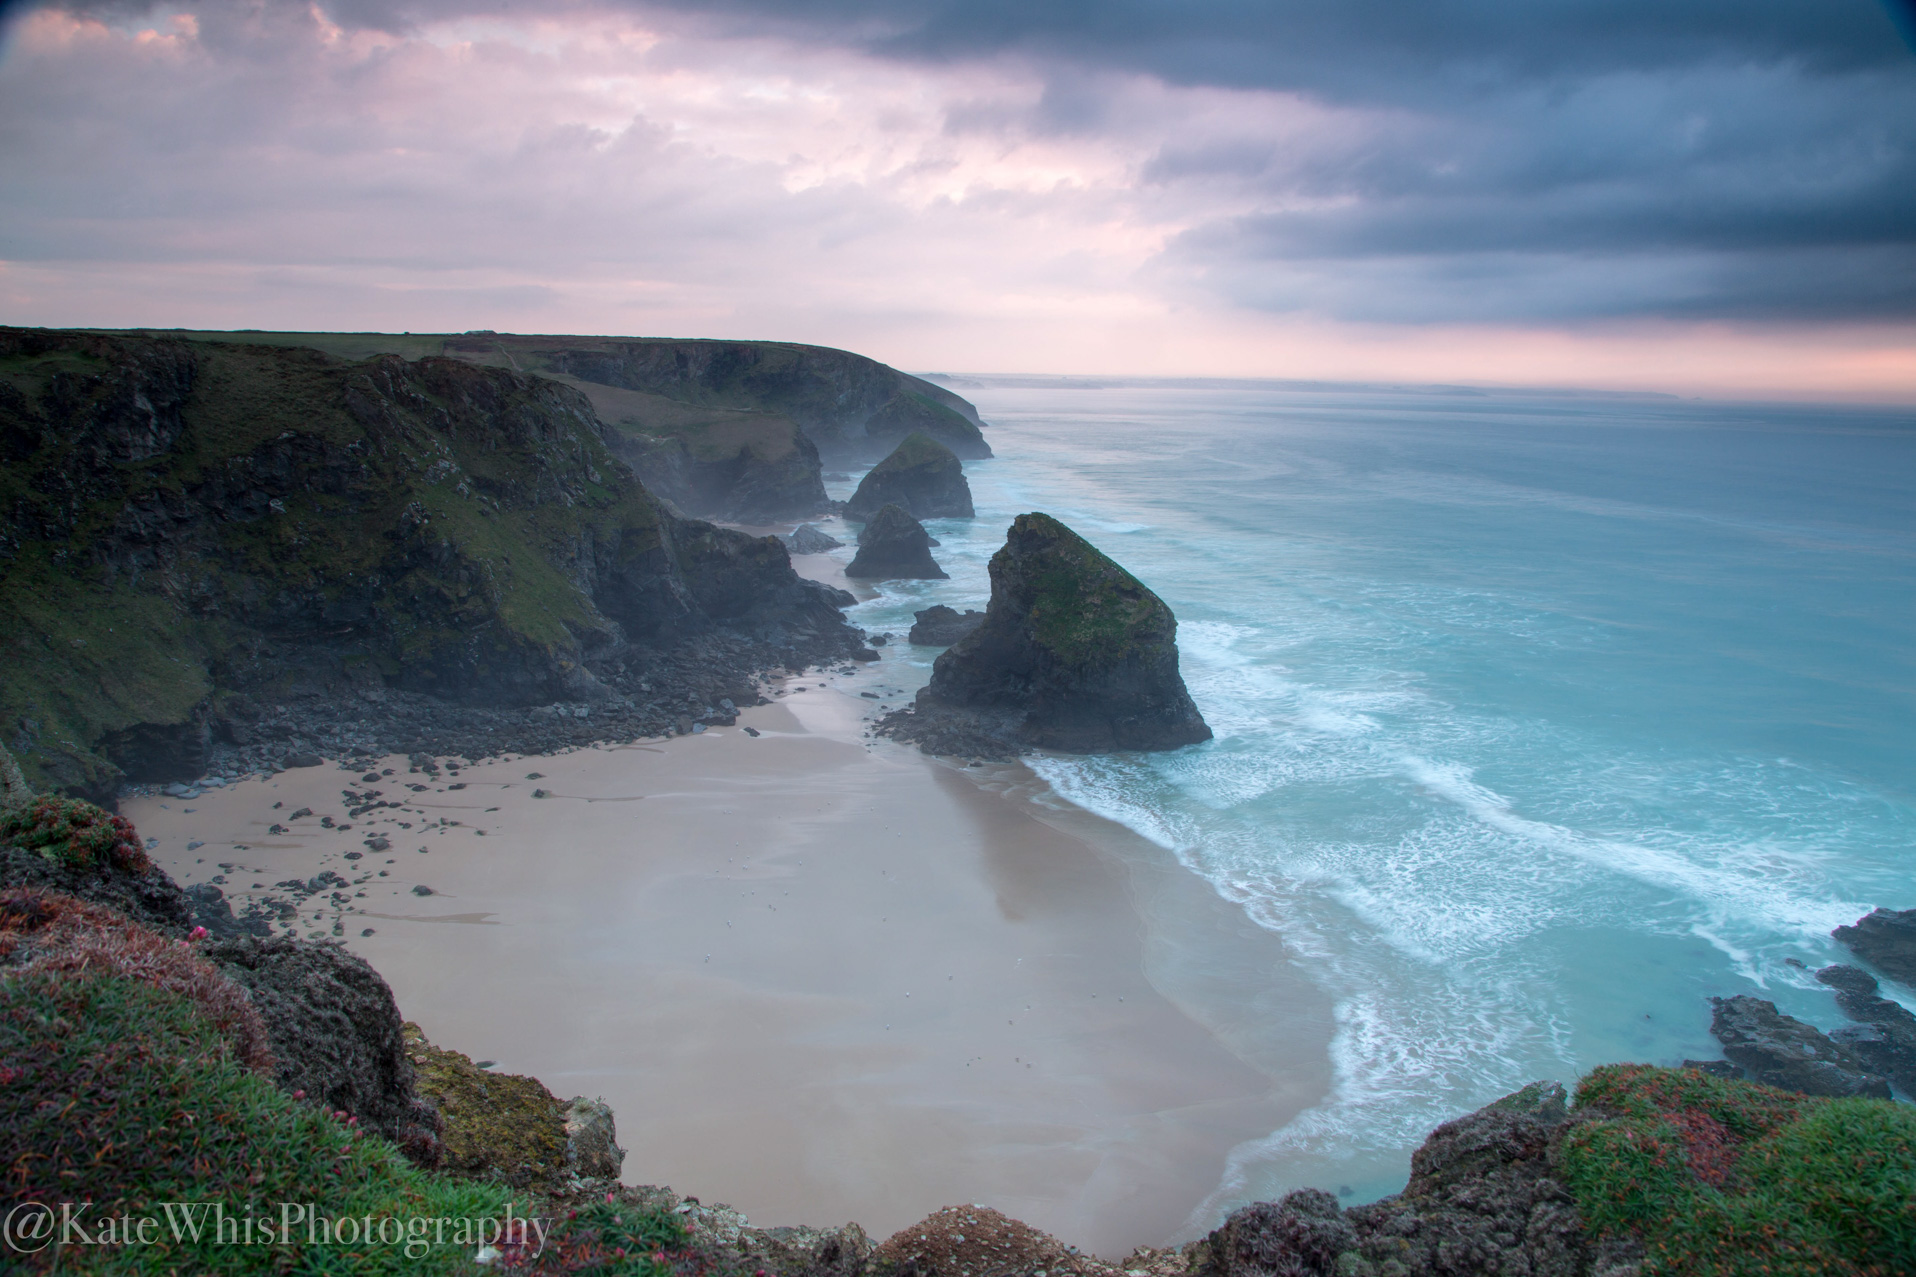 View of Bedruthan Steps, Cornwall at sunset